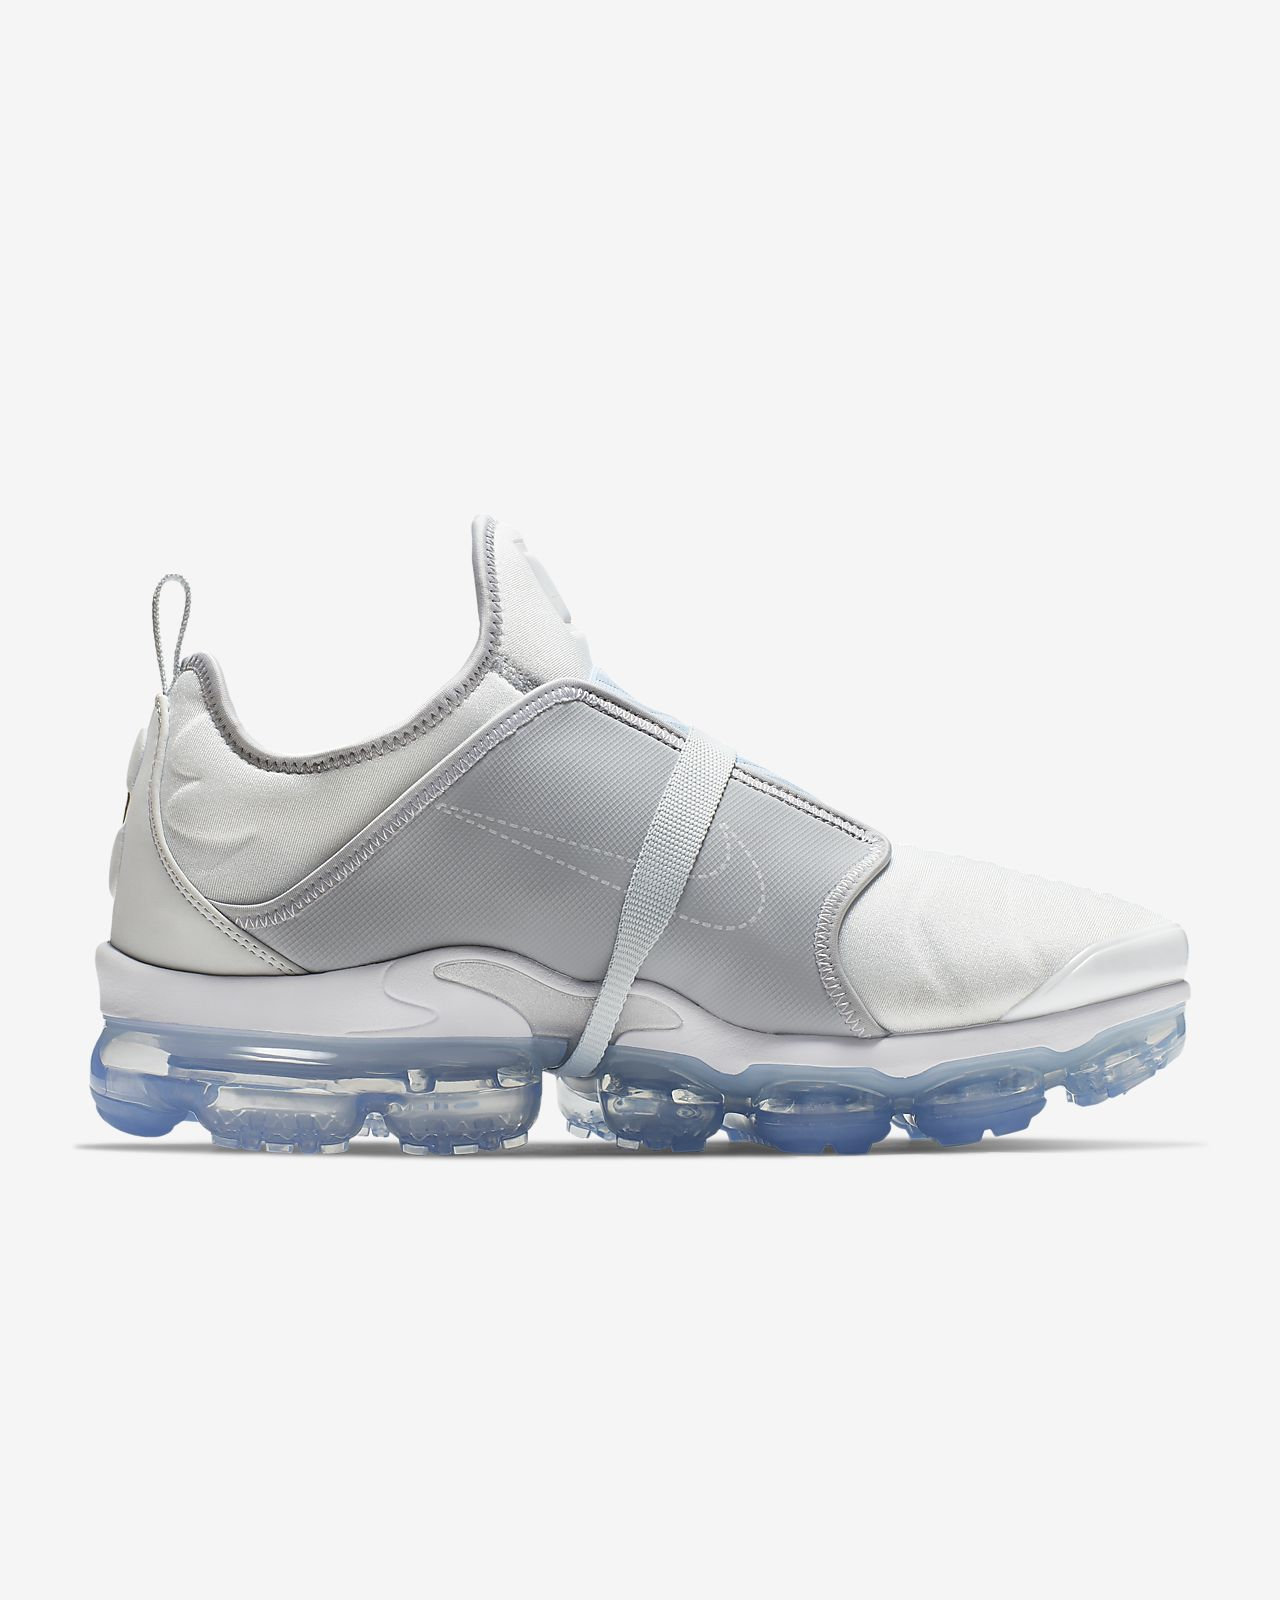 Sko Nike Air VaporMax Plus On Air Lou Matheron